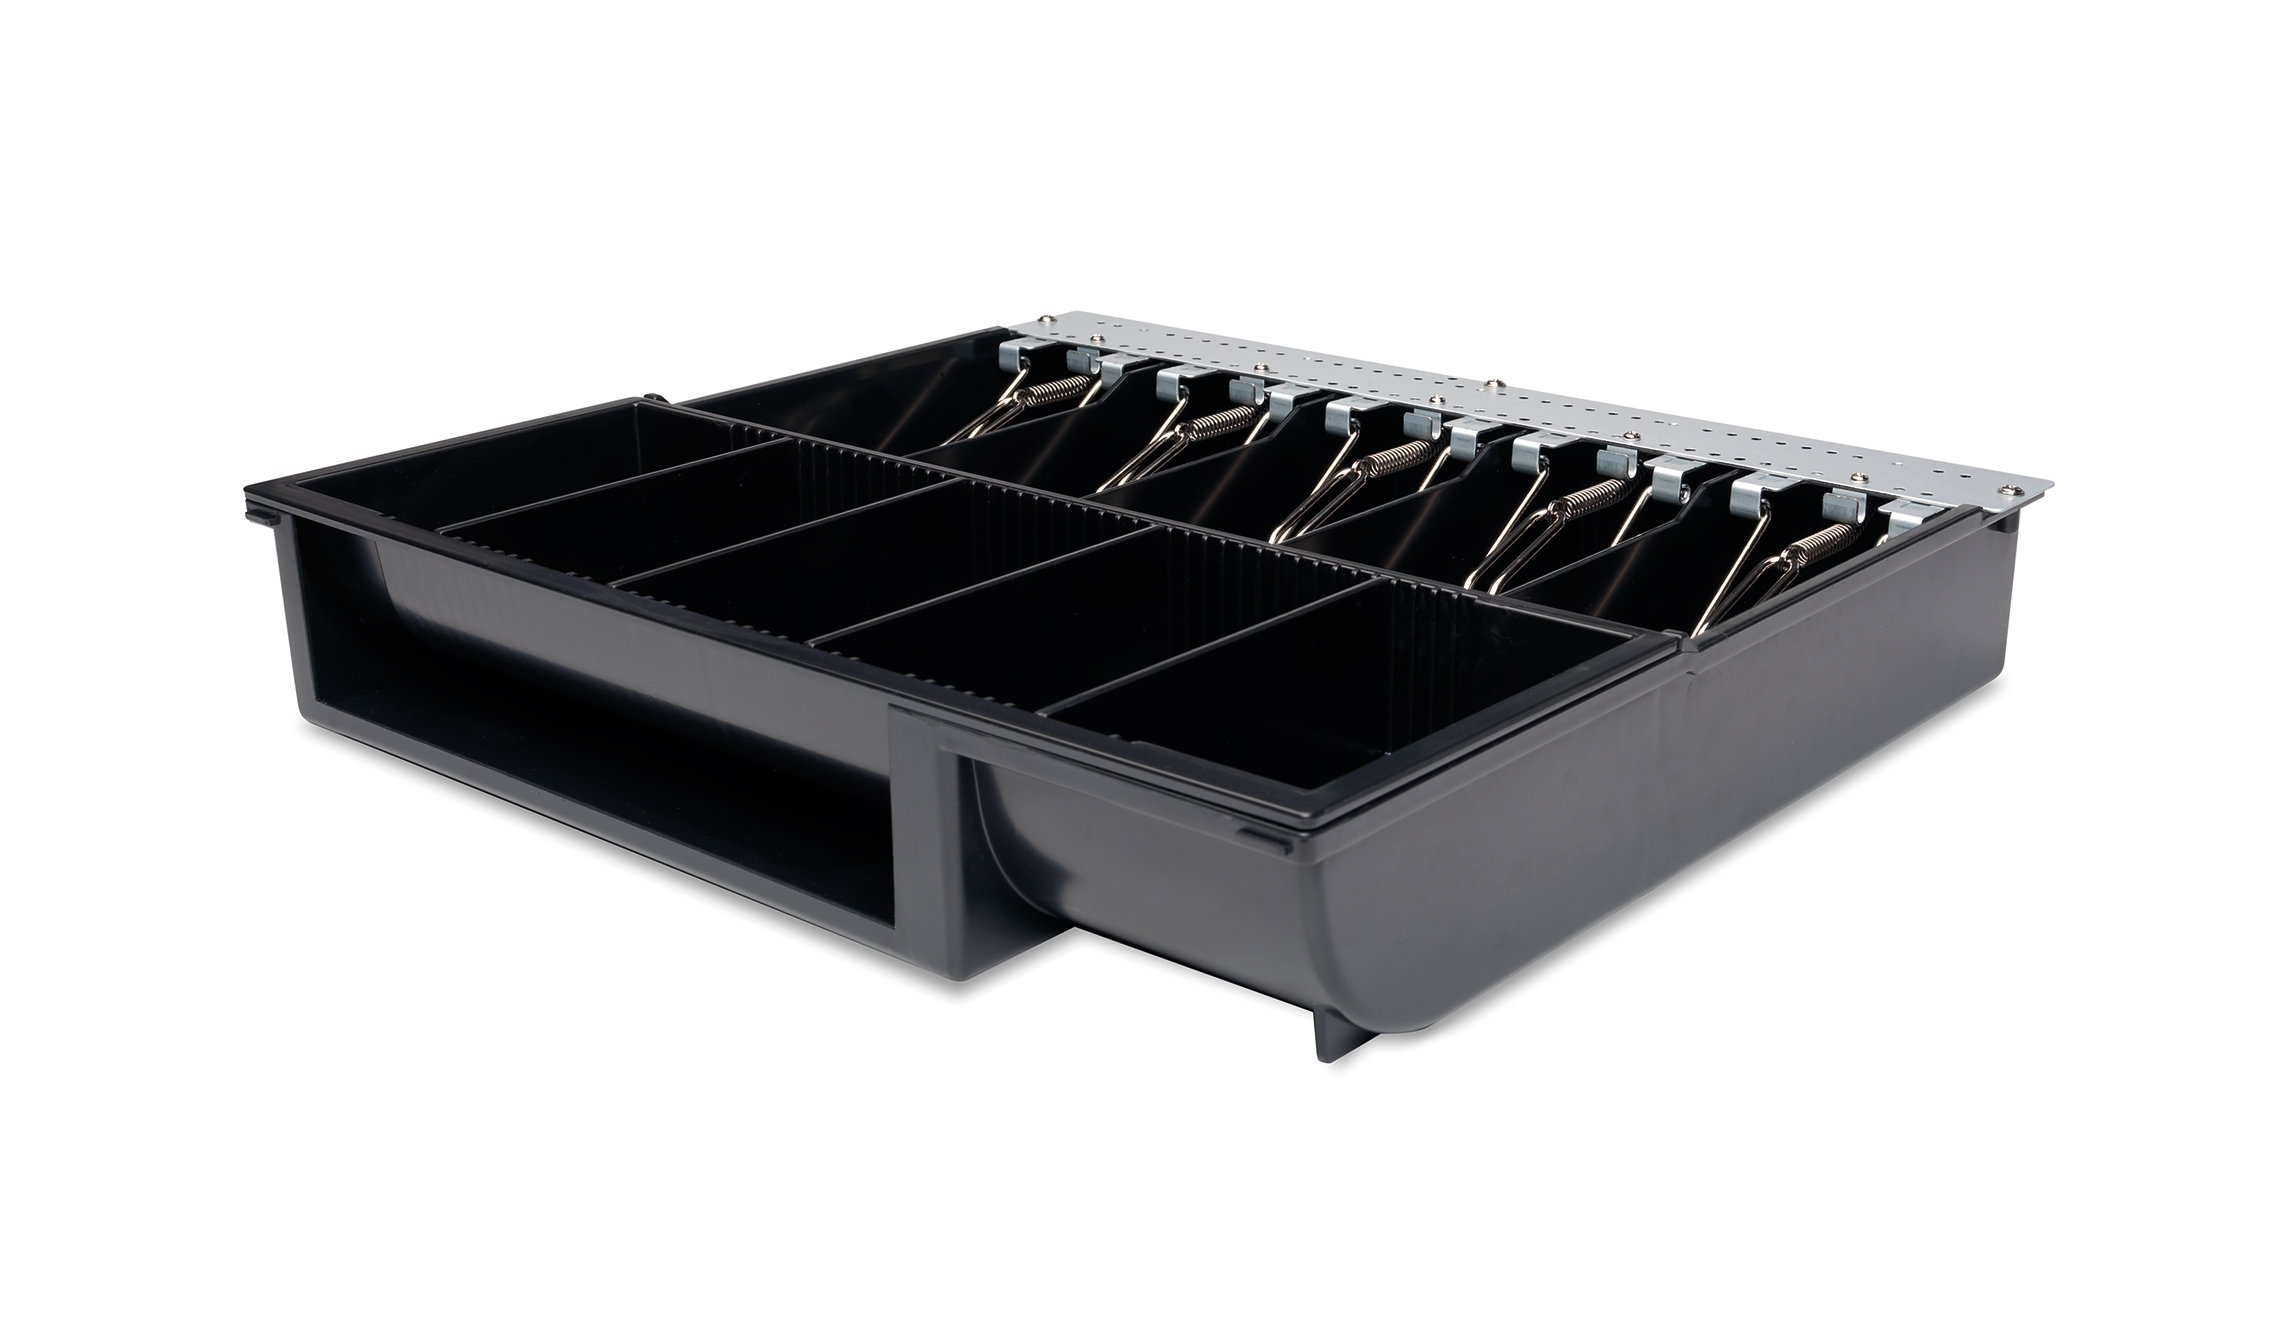 safescan-sd4141-tray